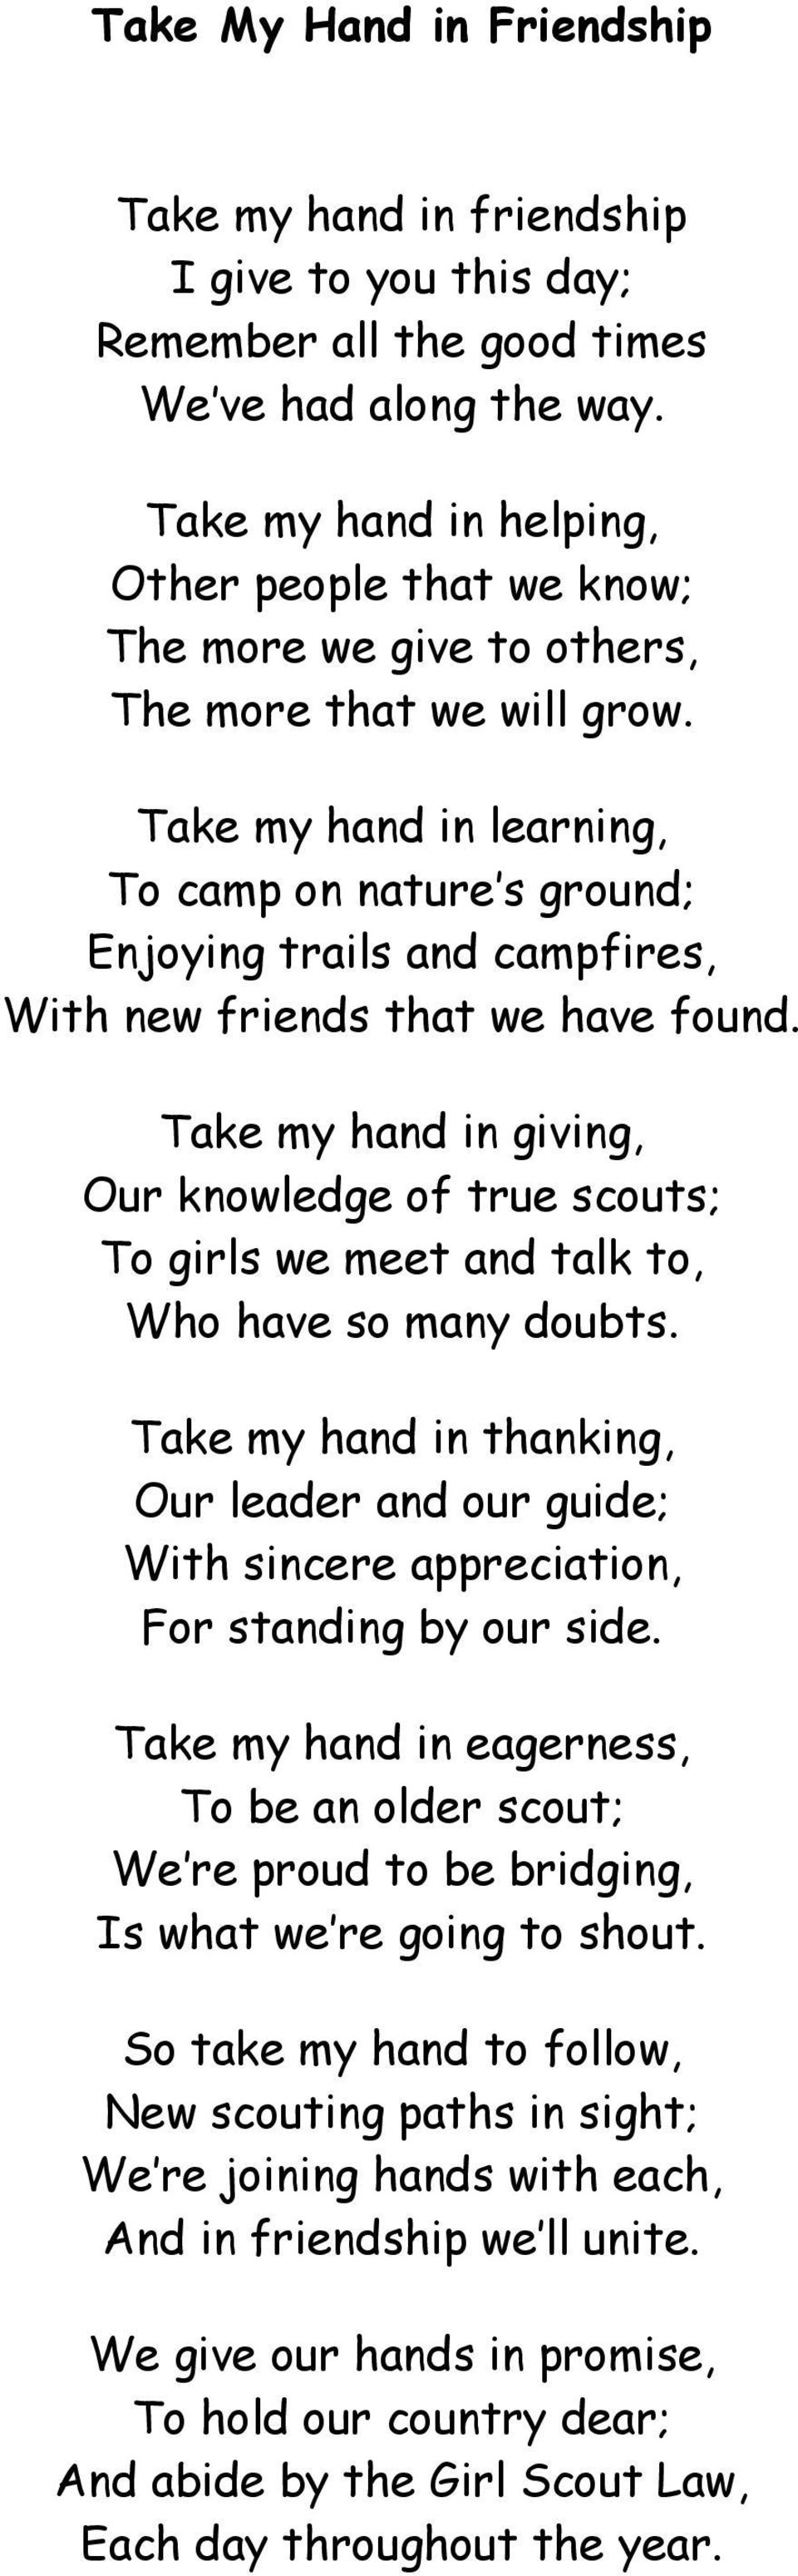 Take my hand in learning, To camp on nature s ground; Enjoying trails and campfires, With new friends that we have found.